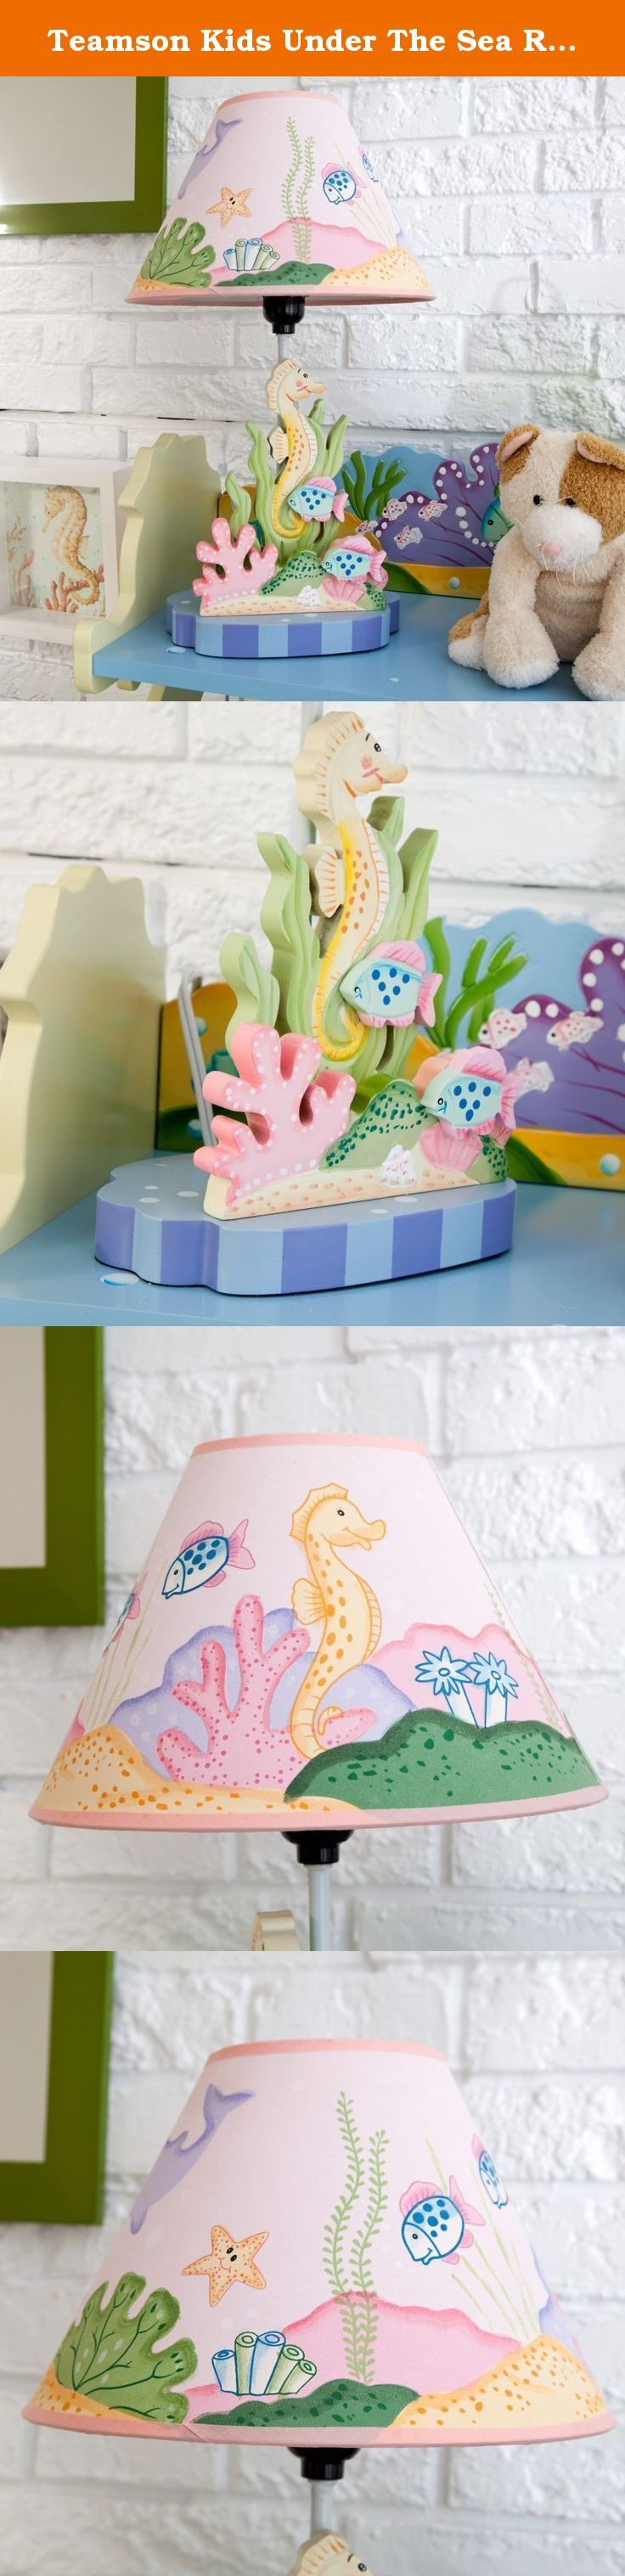 Teamson Kids Under The Sea Room Collection Table Lamp. Add an aquatic feel to your child's room with Fantasy Fields' Under the Sea Table Lamp. With a profusion of color and design, this lamp makes the perfect touch and brightens any nursery. The base features a hand painted golden yellow seahorse, seaweed, and tropical looking pink and blue fish. The lamp shade casts a mirrored effect of the base and assists the bulb in creating a soft glow to any room. Light bulb not included. No…